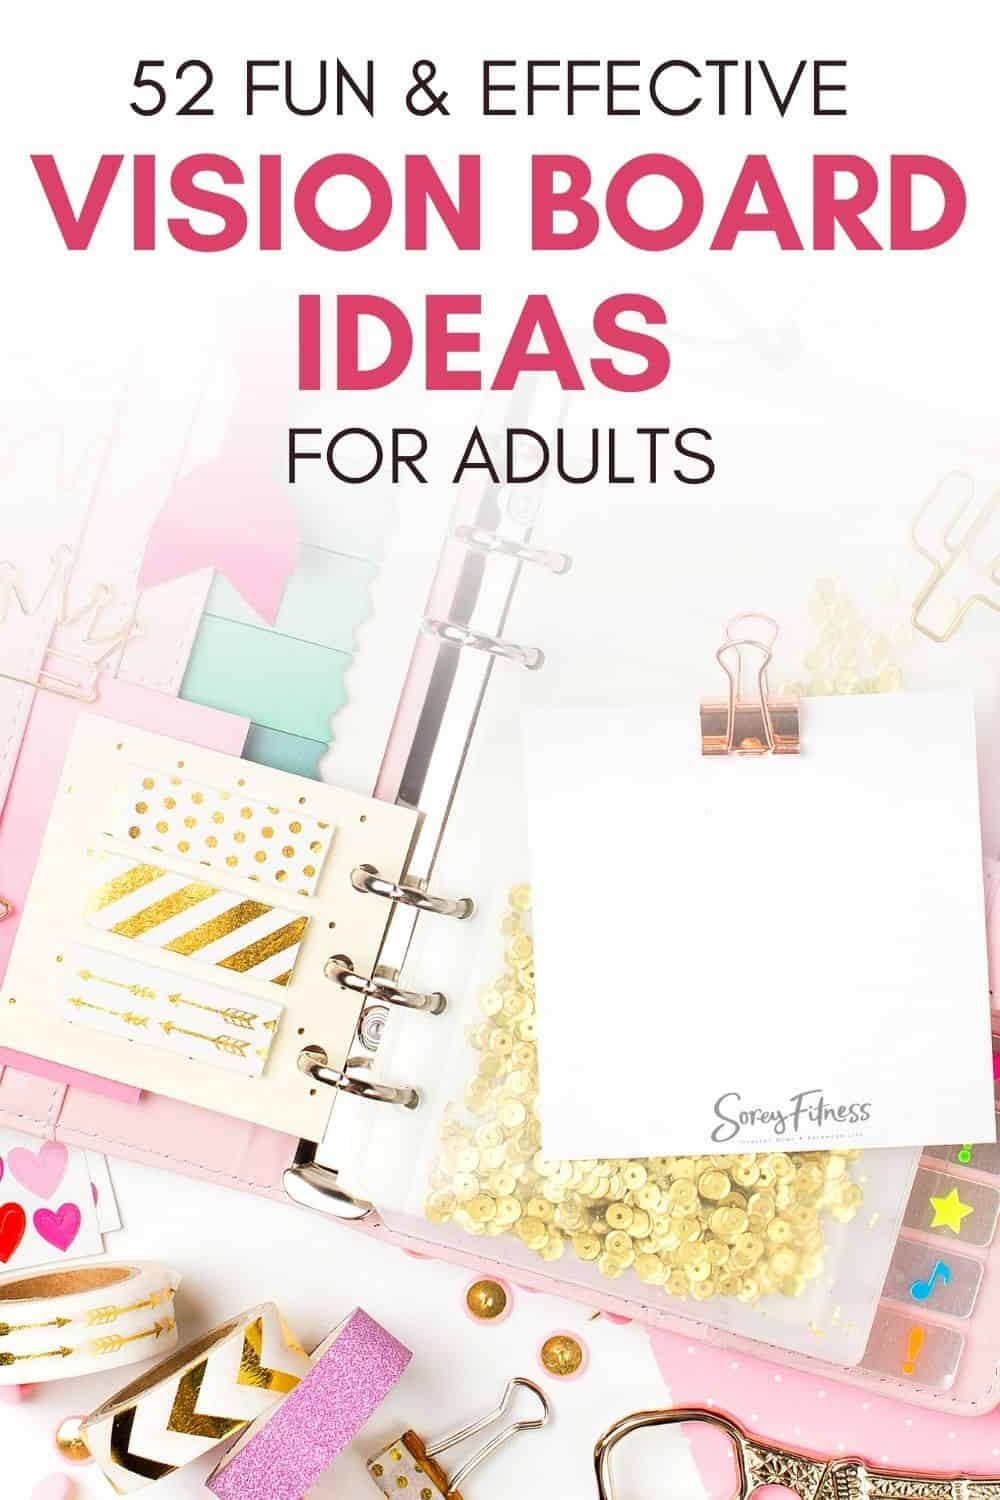 craft materials with the works 52 fun & effective vision board ideas for adults